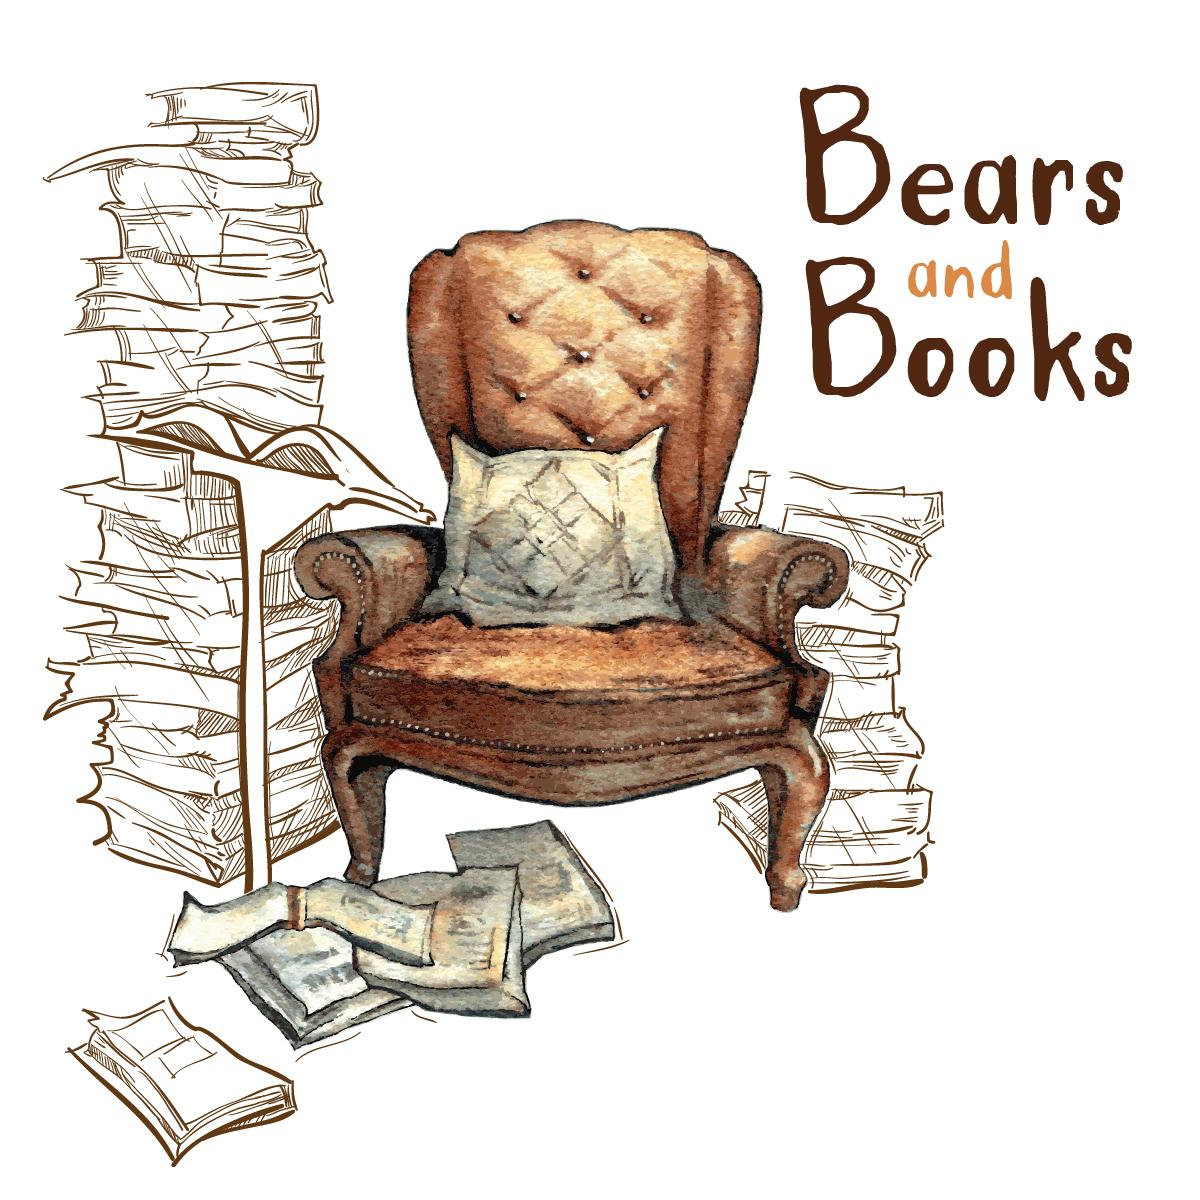 Bears and Books